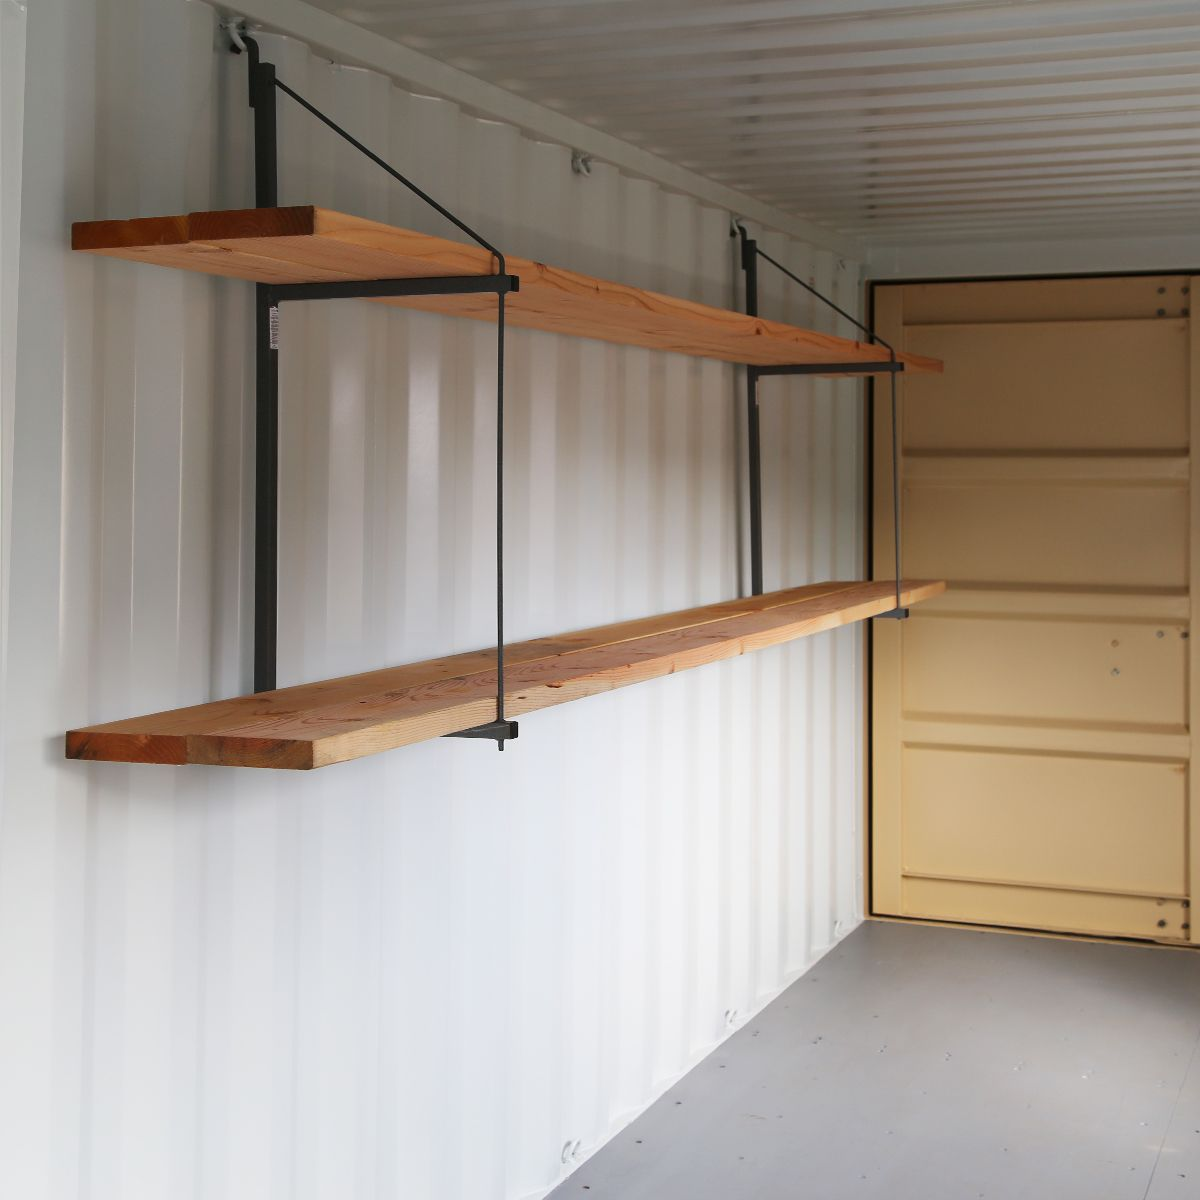 Pin On Garage Storage Shelves: Shipping Container Workshop, Shipping Container